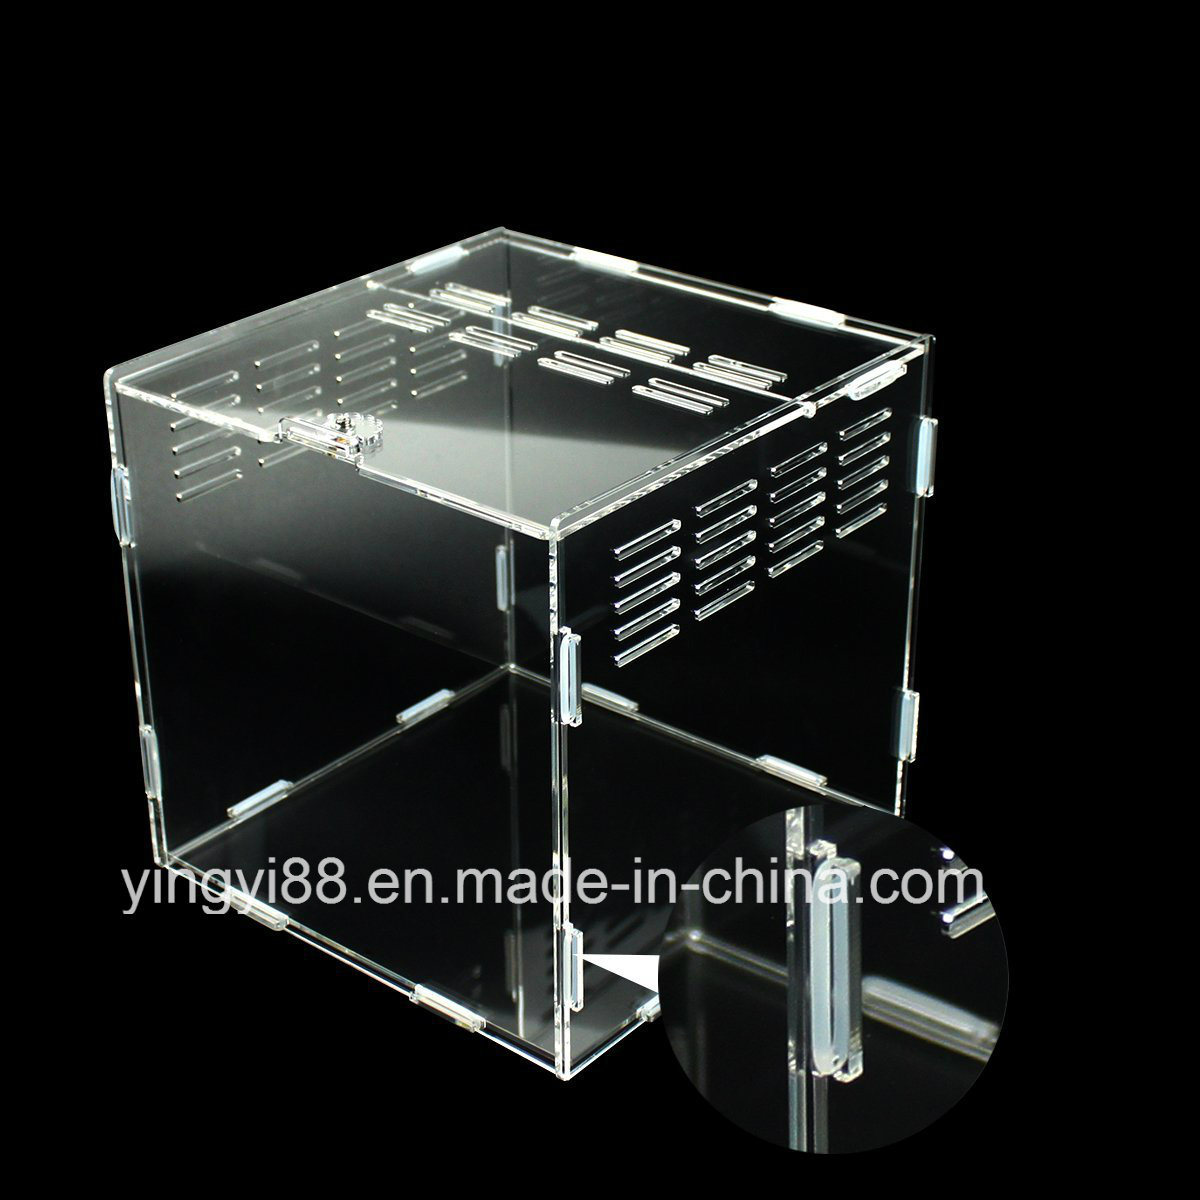 Top Quality Acrylic Reptile Display Box Shenzhen Factory